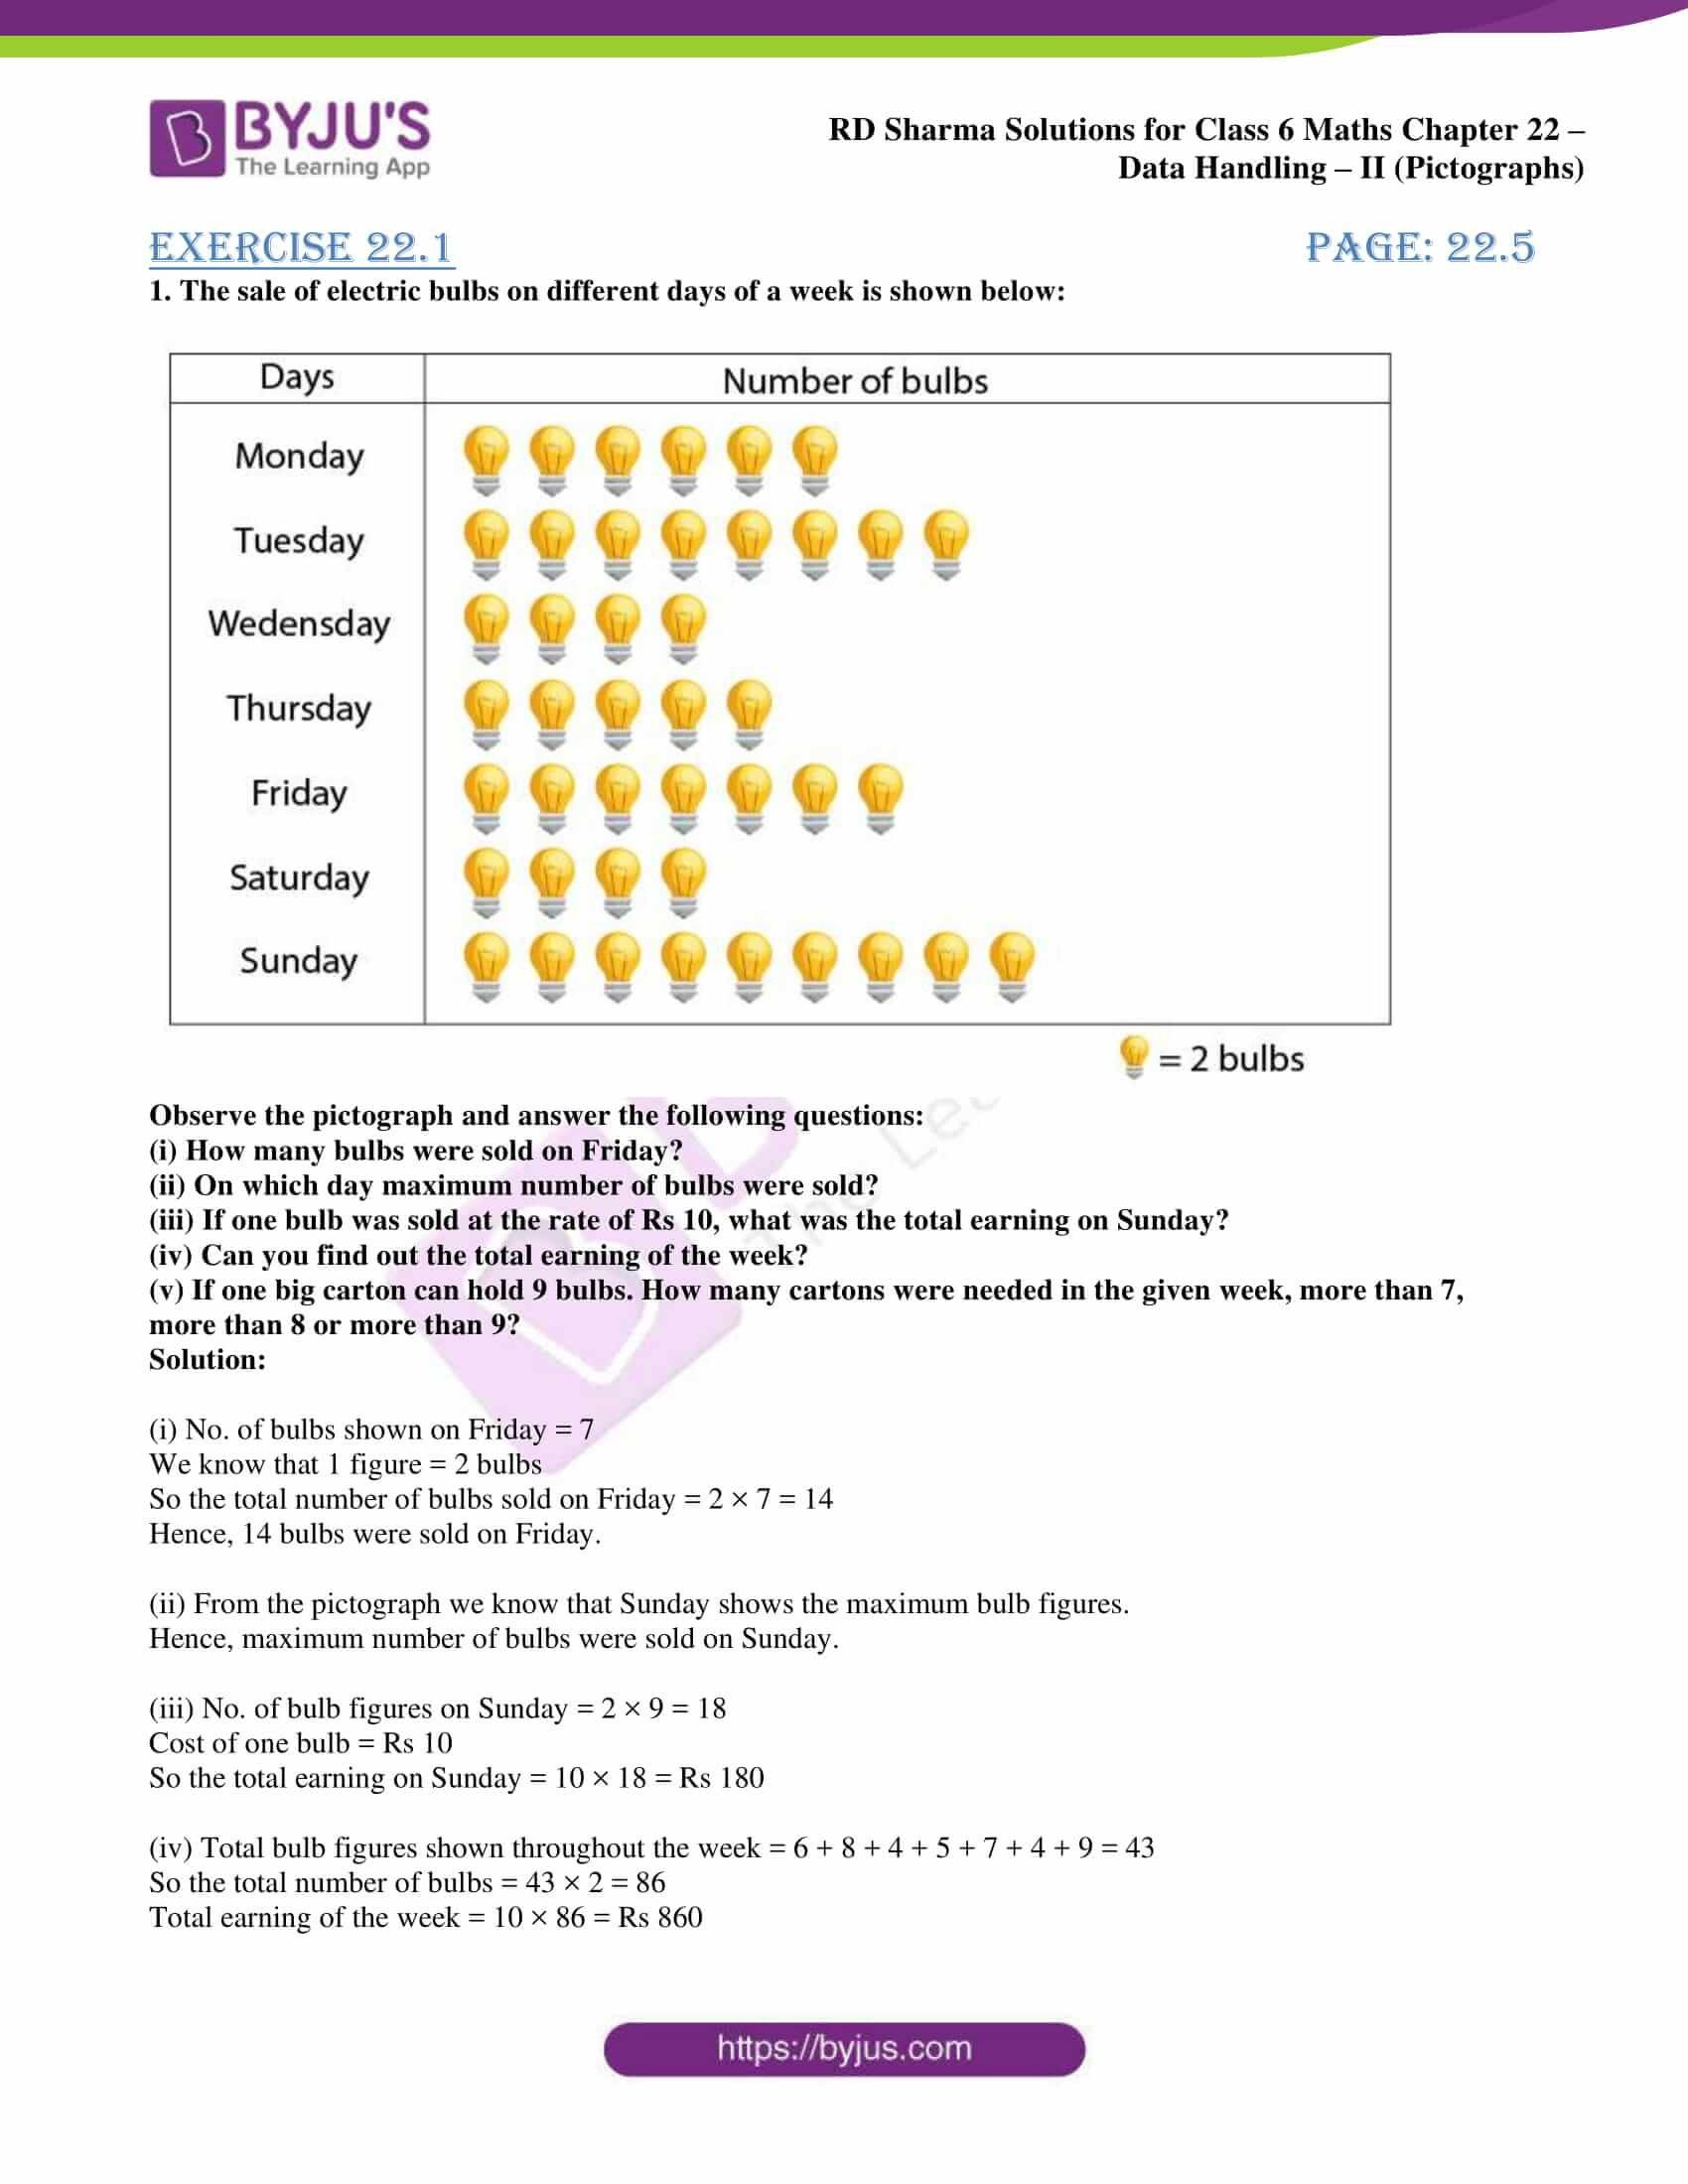 Pictograph Worksheets Pdf Rd Sharma solutions for Class 6 Chapter 22 Data Handling